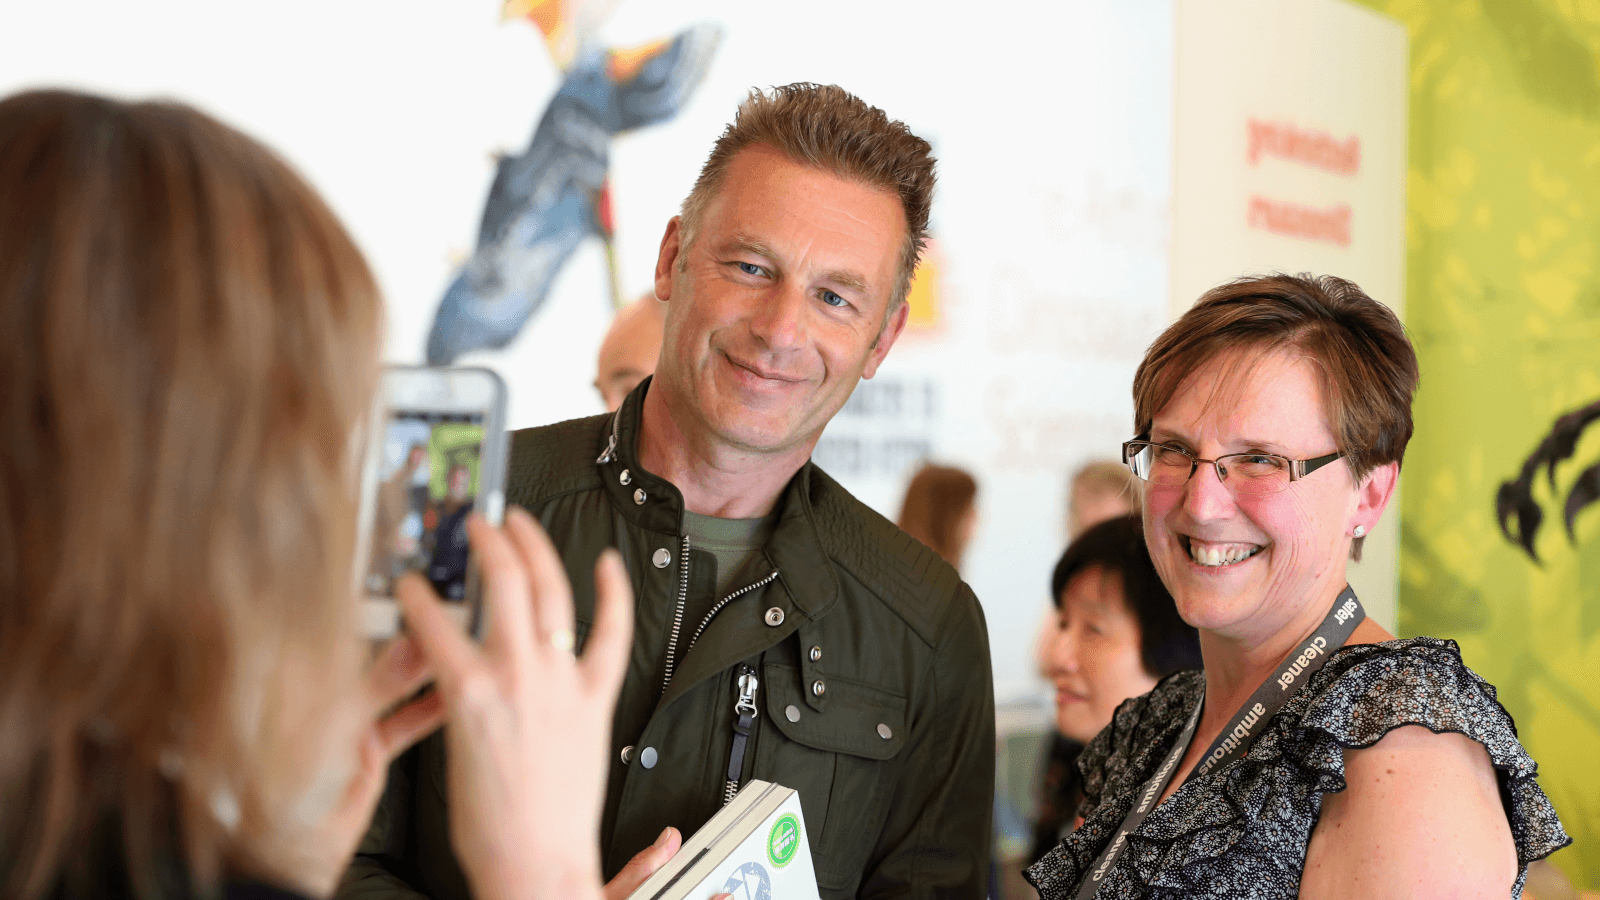 Chris Packham opening the Dinosaurs of China exhibition